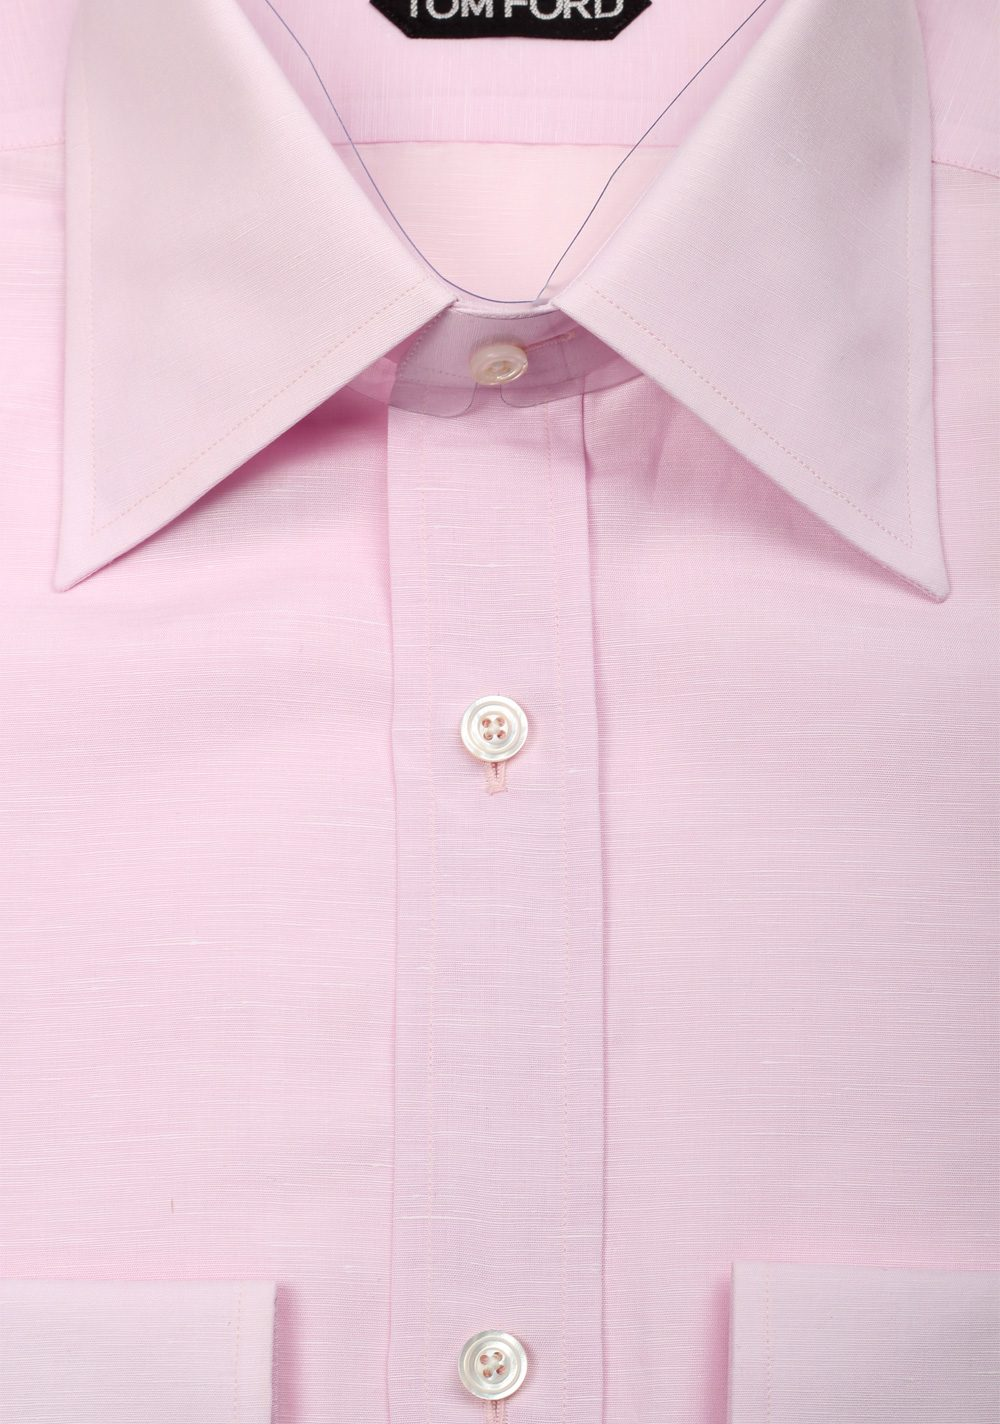 Tom ford solid pink dress shirt size 40 15 75 u s for Size 15 dress shirt